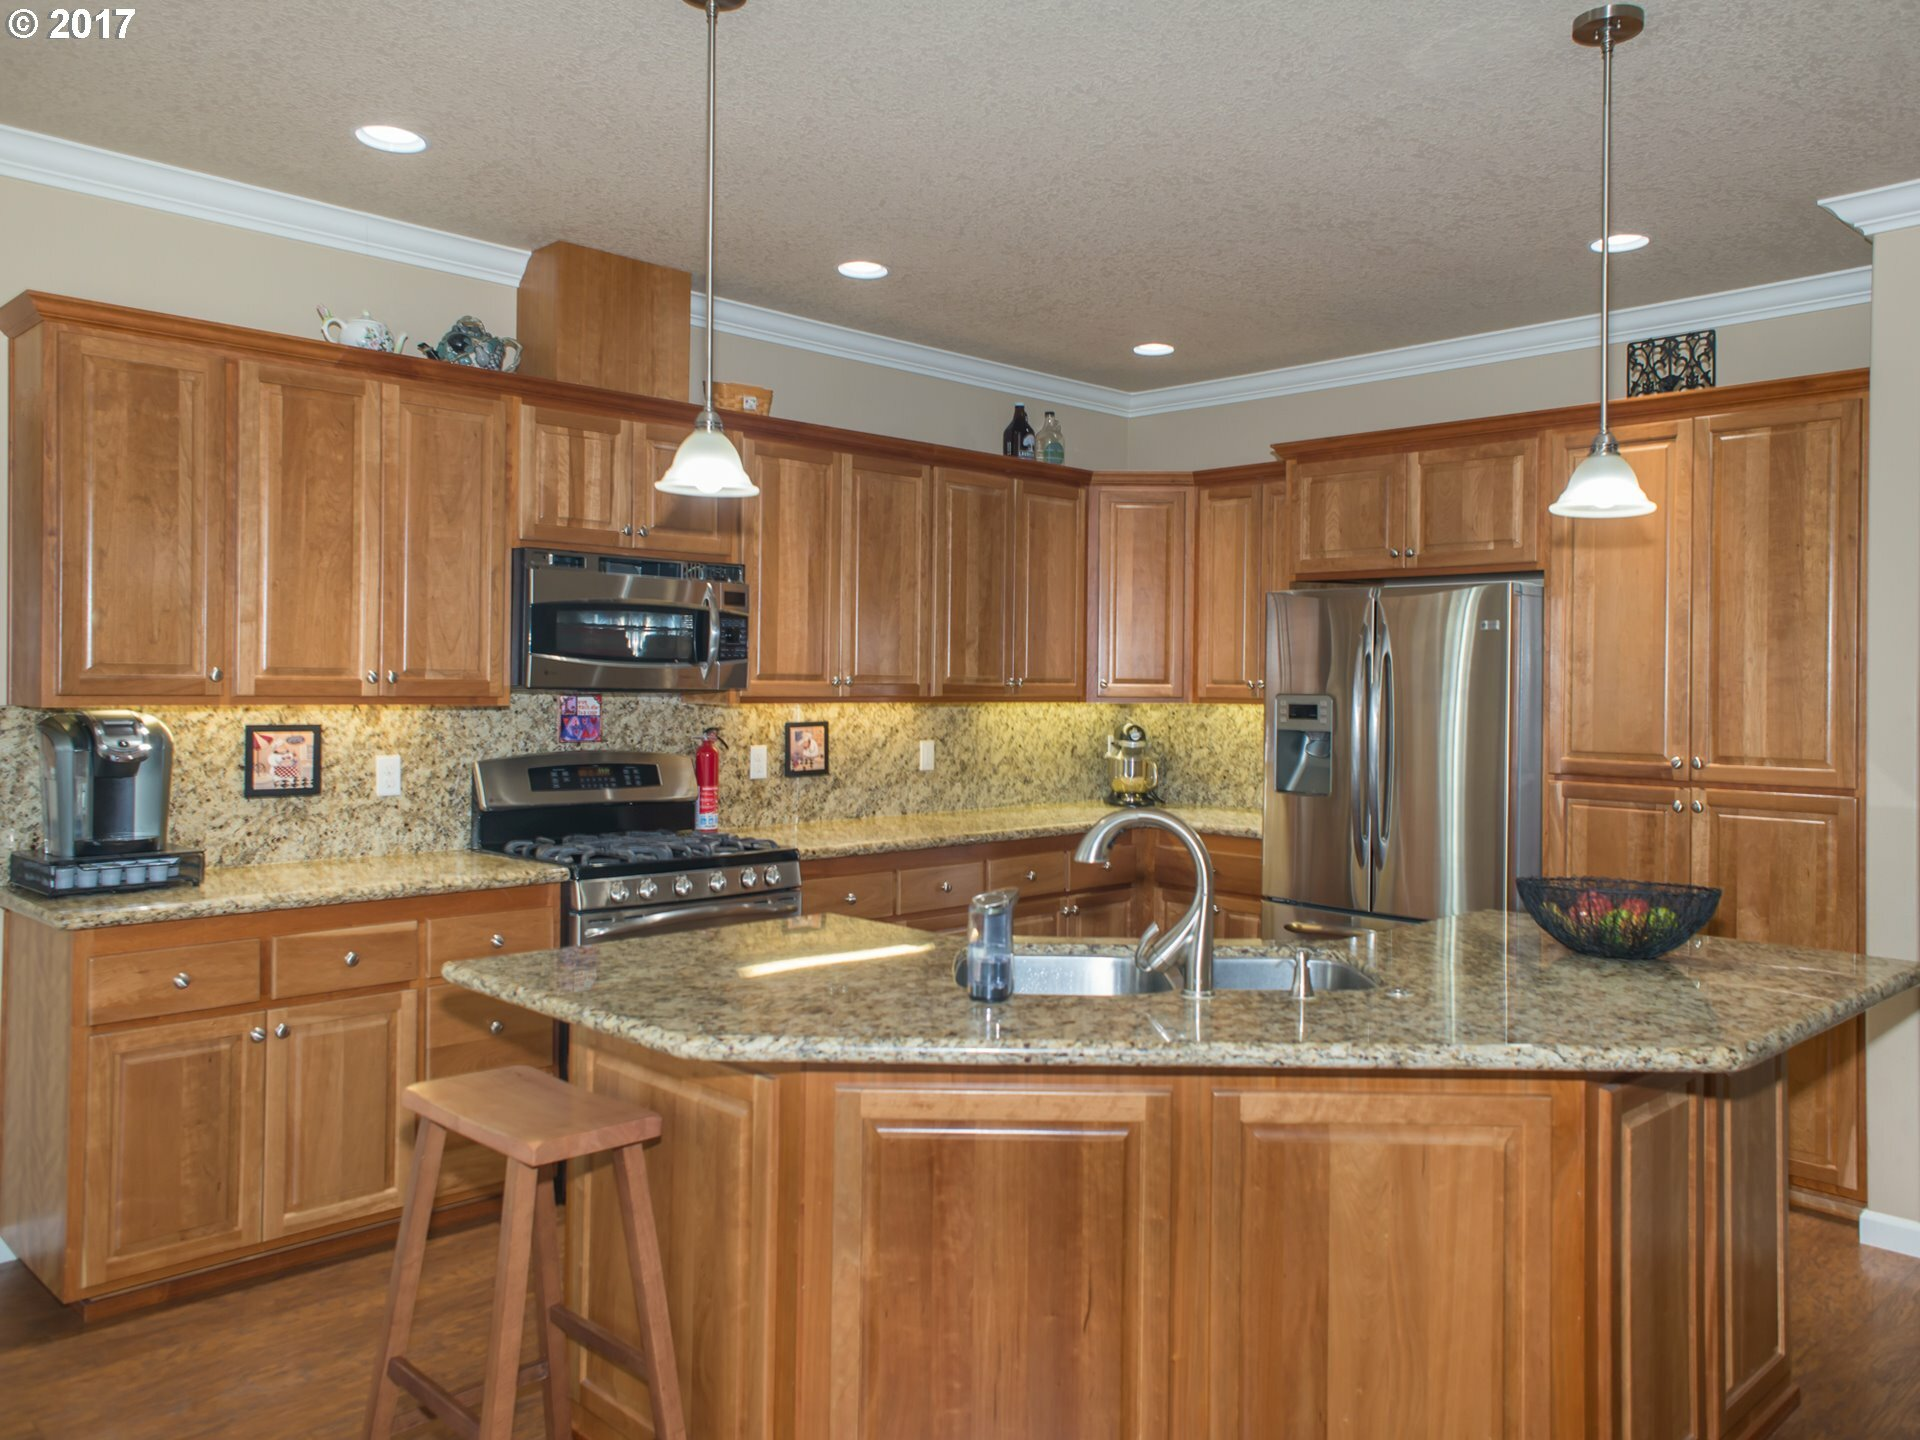 1391 Breckenridge Dr, Junction City, OR - USA (photo 5)